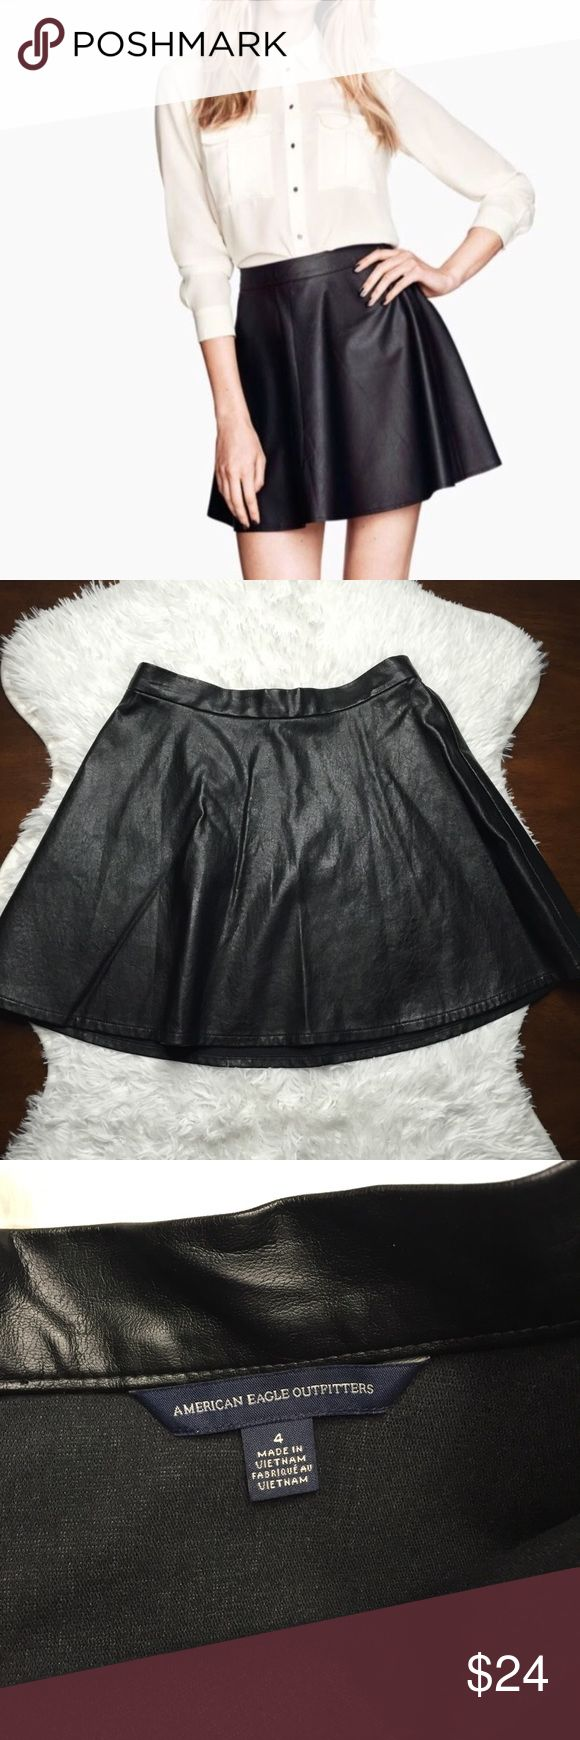 American Eagle Faux Leather Skirt Sz 4. EUC. Measurements shown in pictures. Waist is true to size, not stretchy. Black. American Eagle Outfitters Skirts